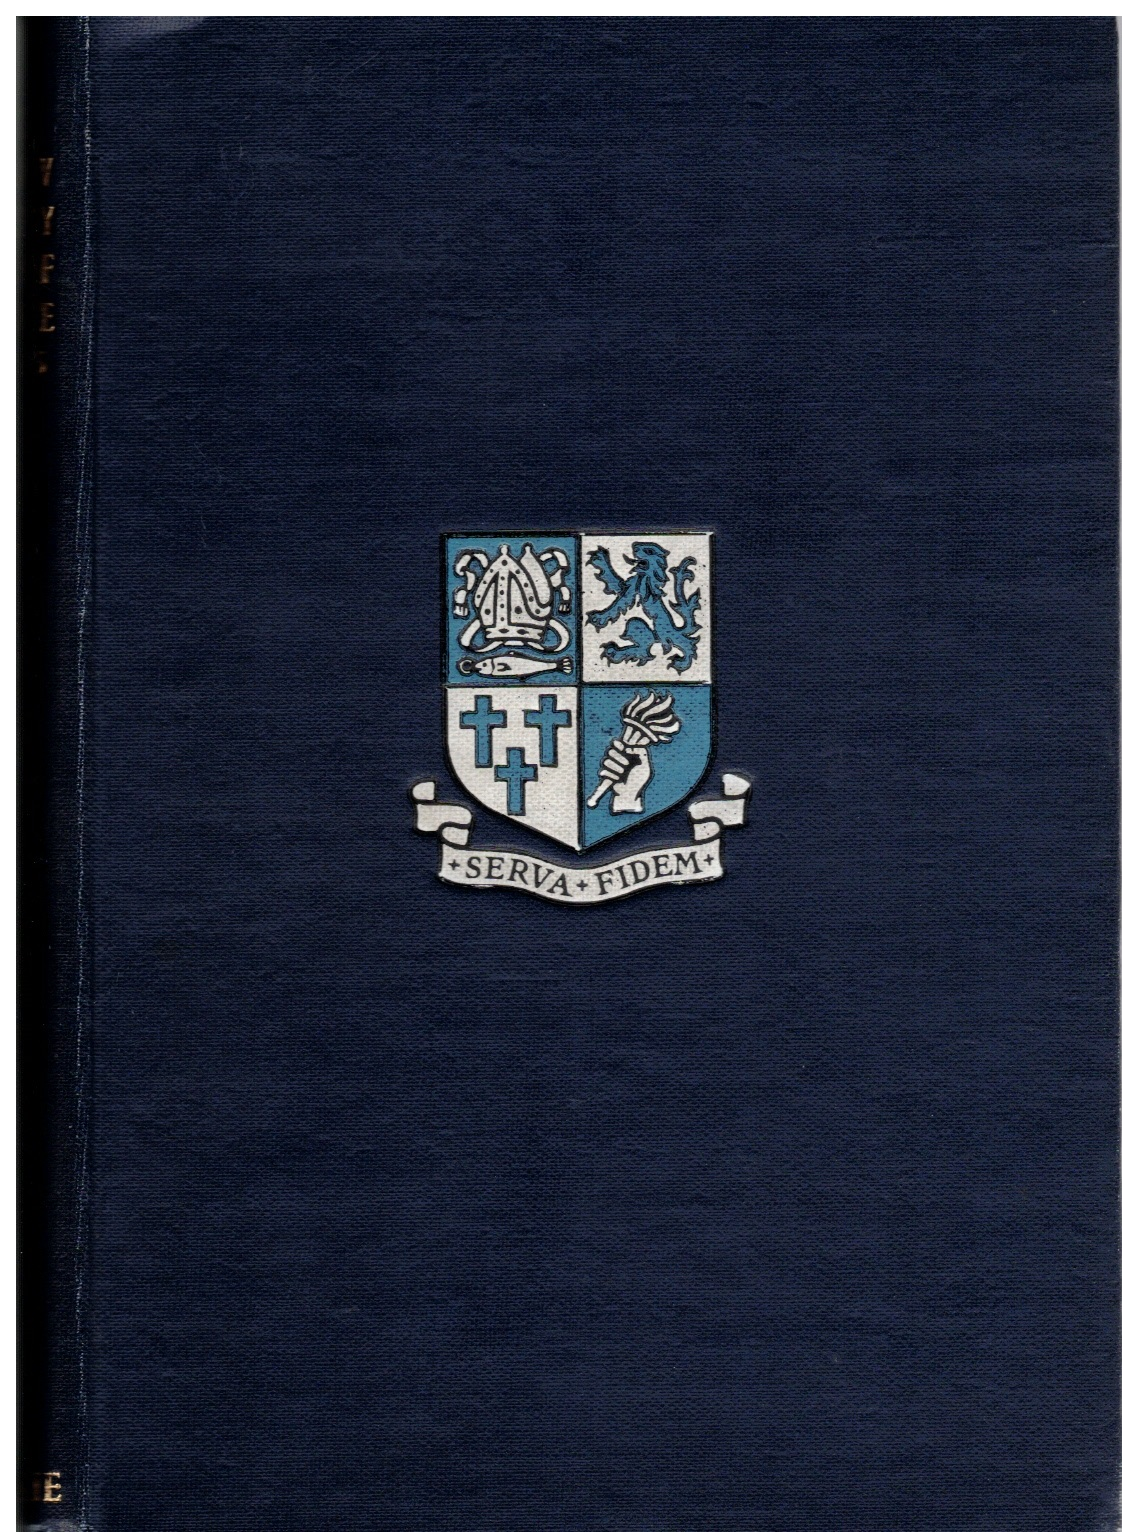 The Glasgow Academy Roll of Service, 1951 (collection P. Reinders)